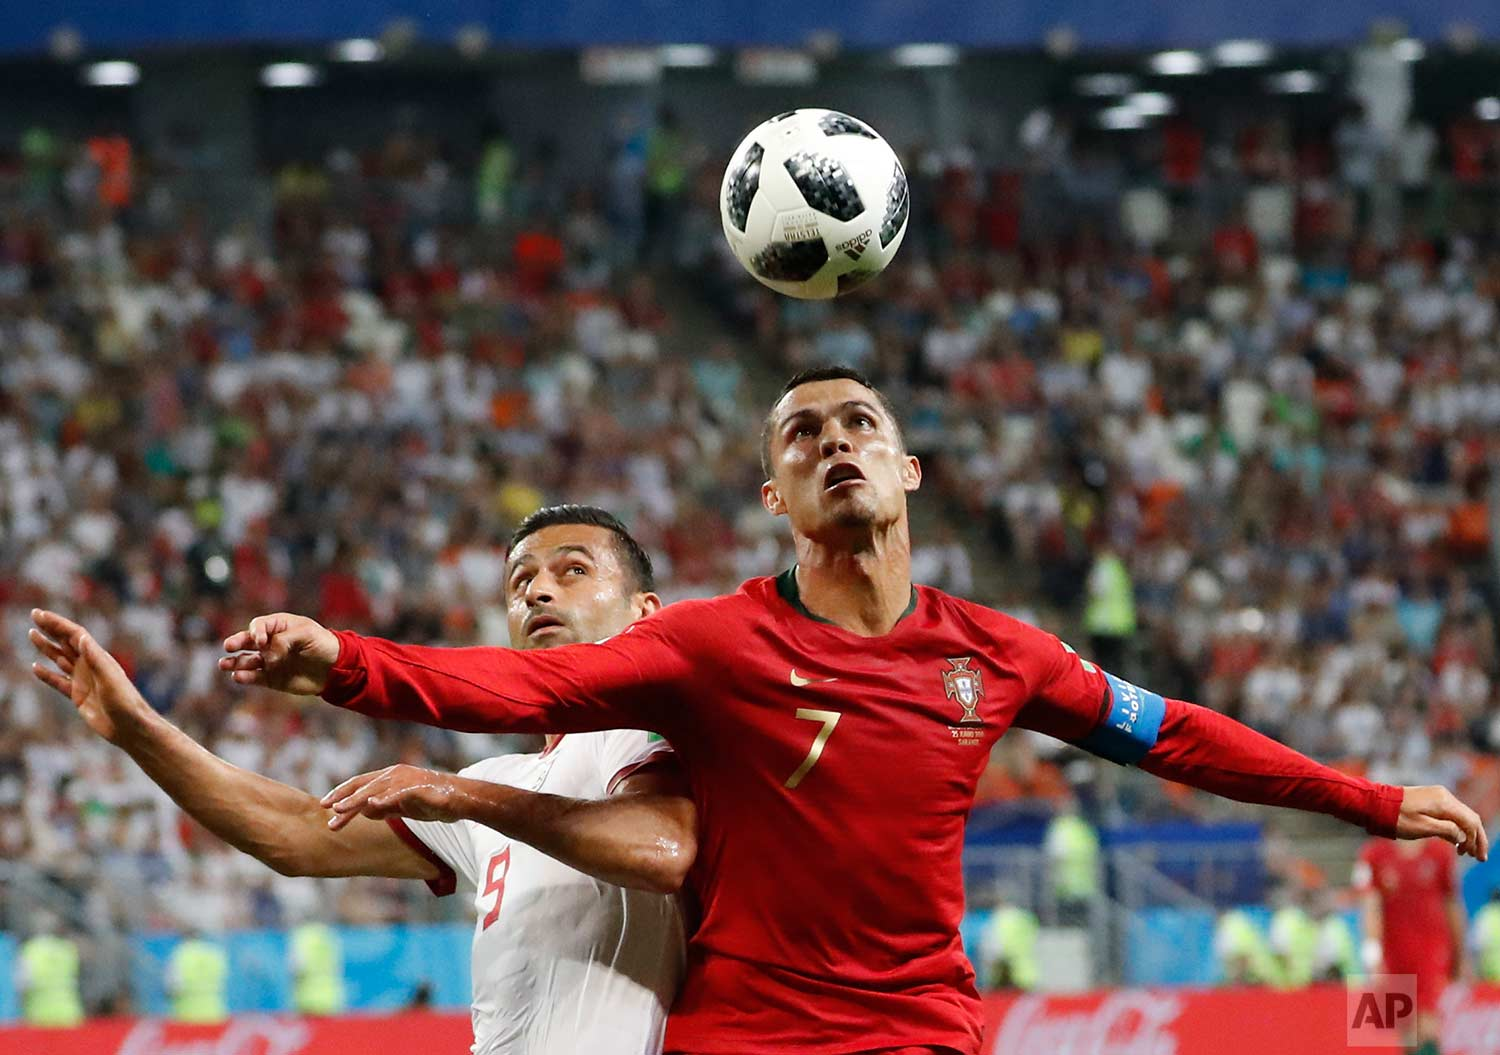 Portugal's Cristiano Ronaldo, right, and Iran's Omid Ebrahimi challenge for the ball during the group B match between Iran and Portugal at the 2018 soccer World Cup at the Mordovia Arena in Saransk, Russia, Monday, June 25, 2018. (AP Photo/Pavel Golovkin)